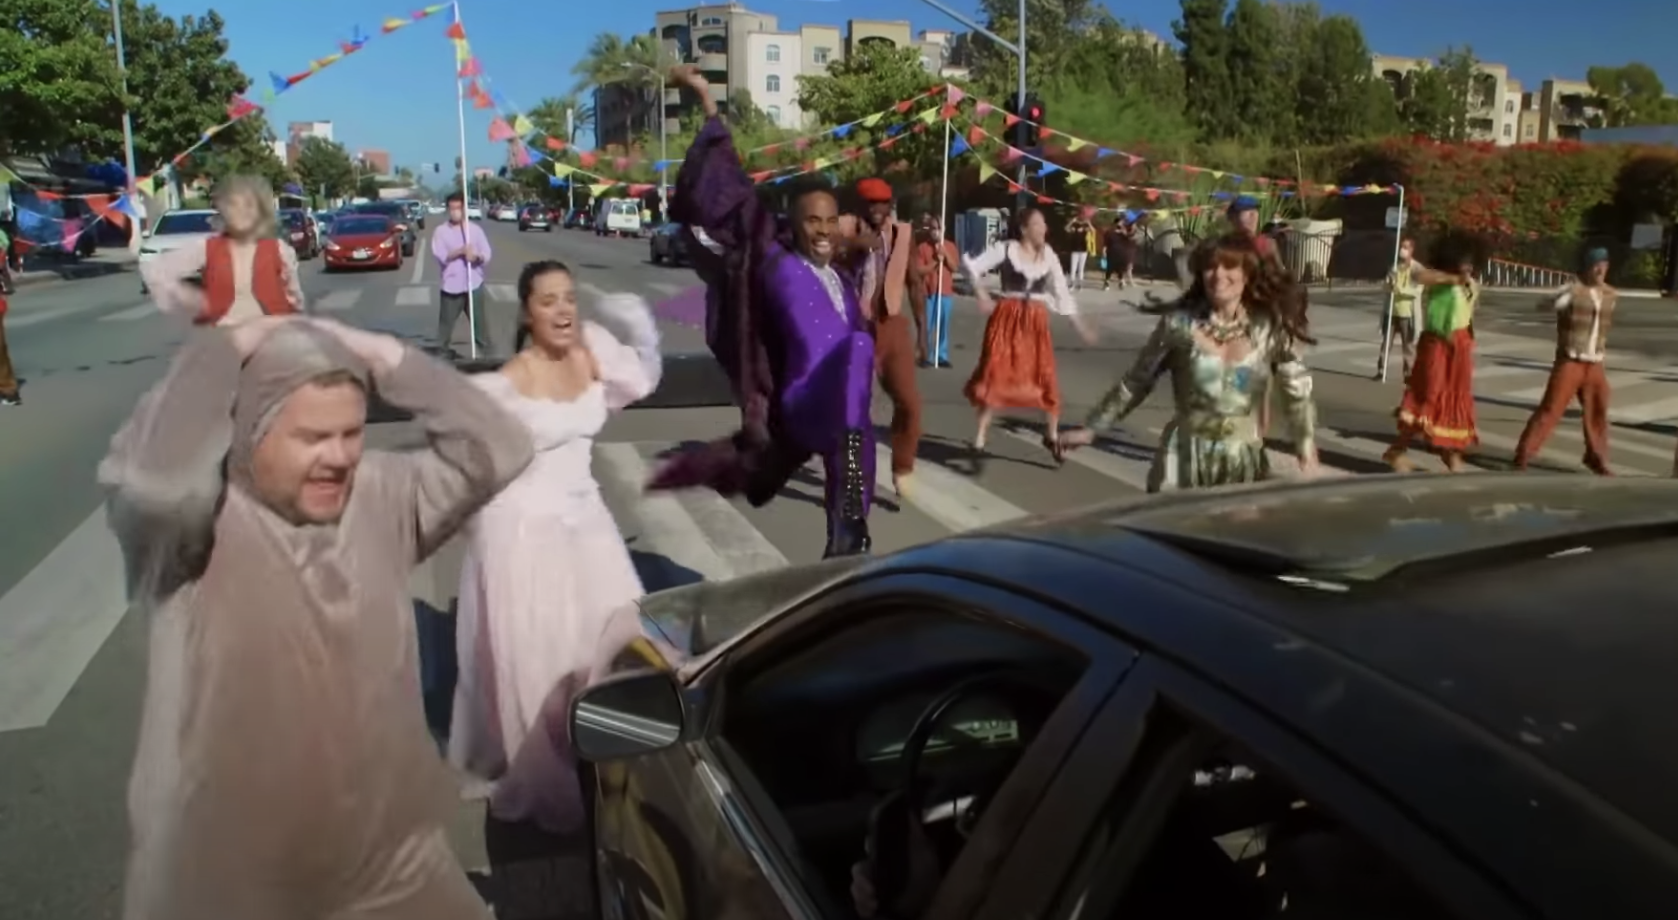 The cast performing in the crosswalk in front of a car